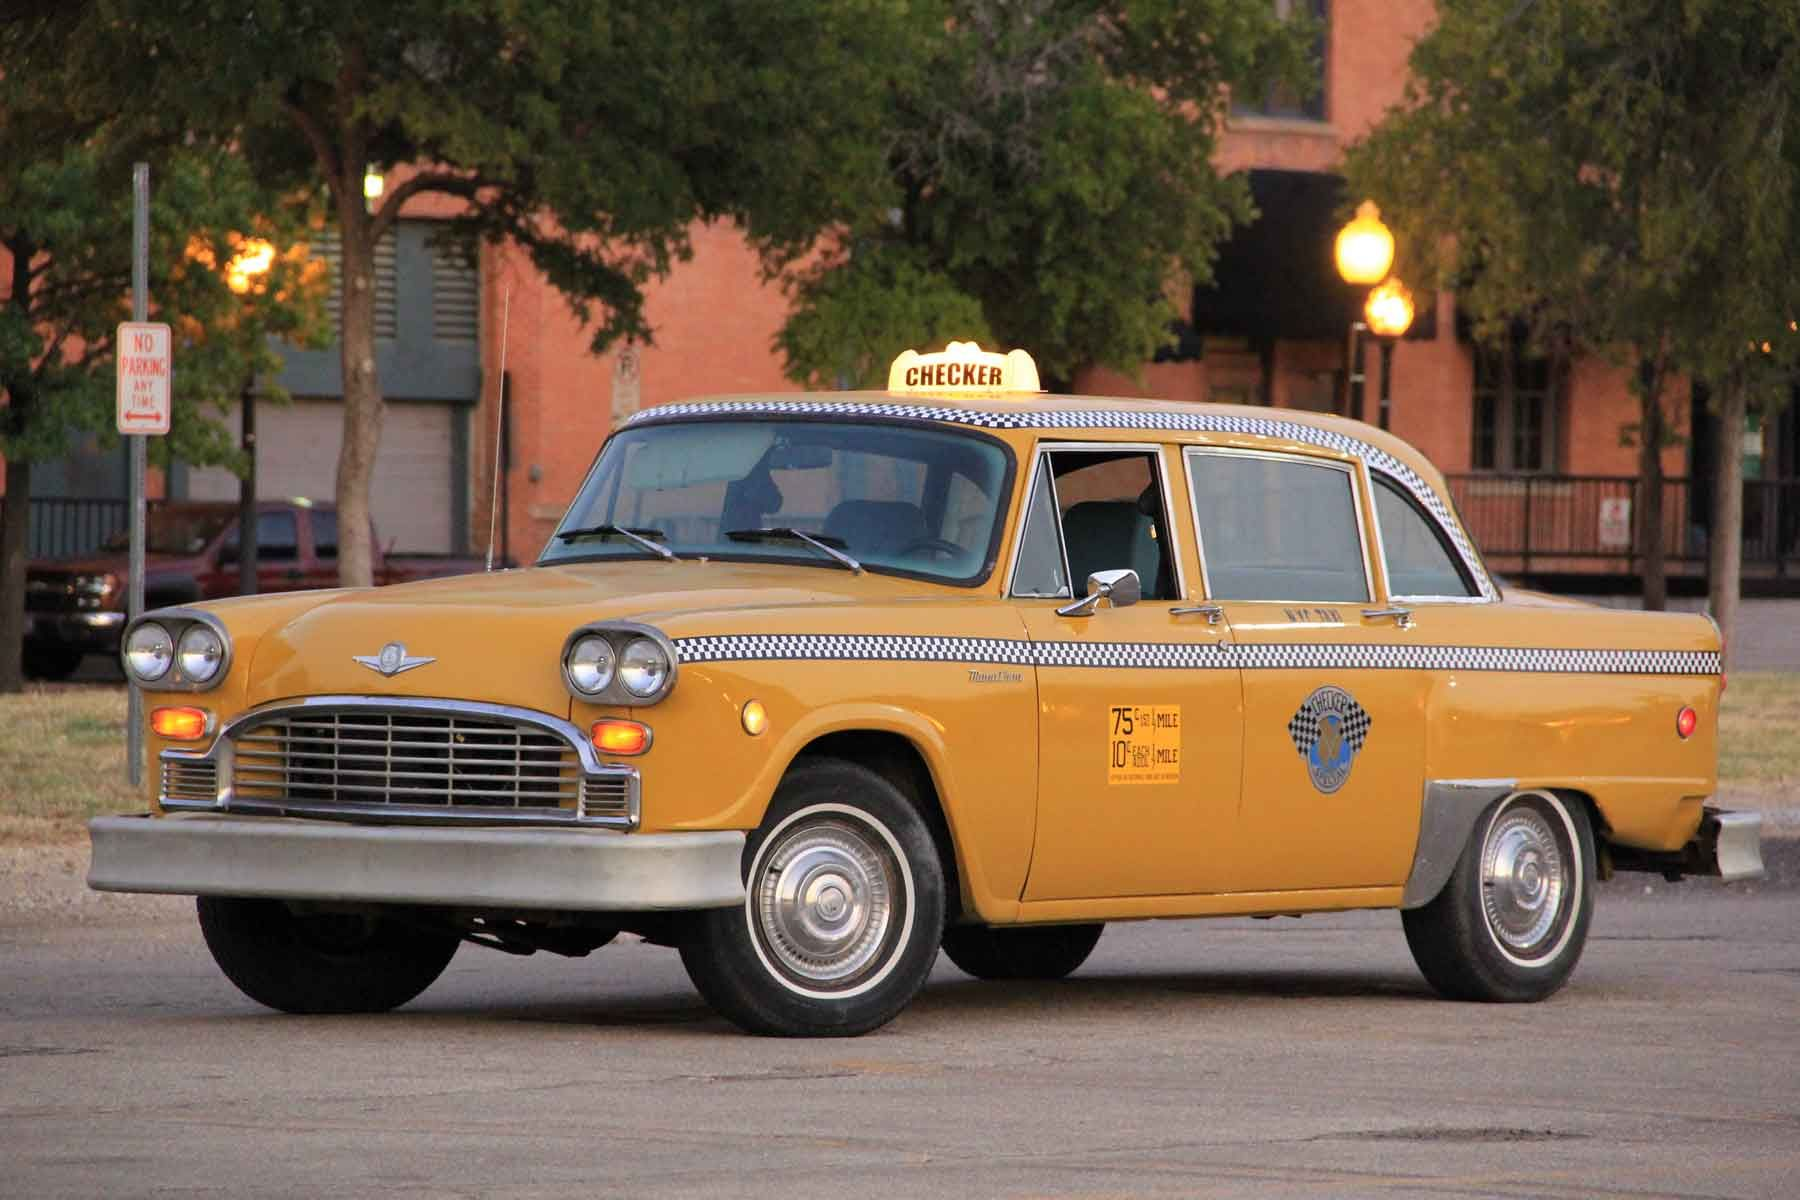 The Car In The Left Is Checker Taxi Cab The Only Known